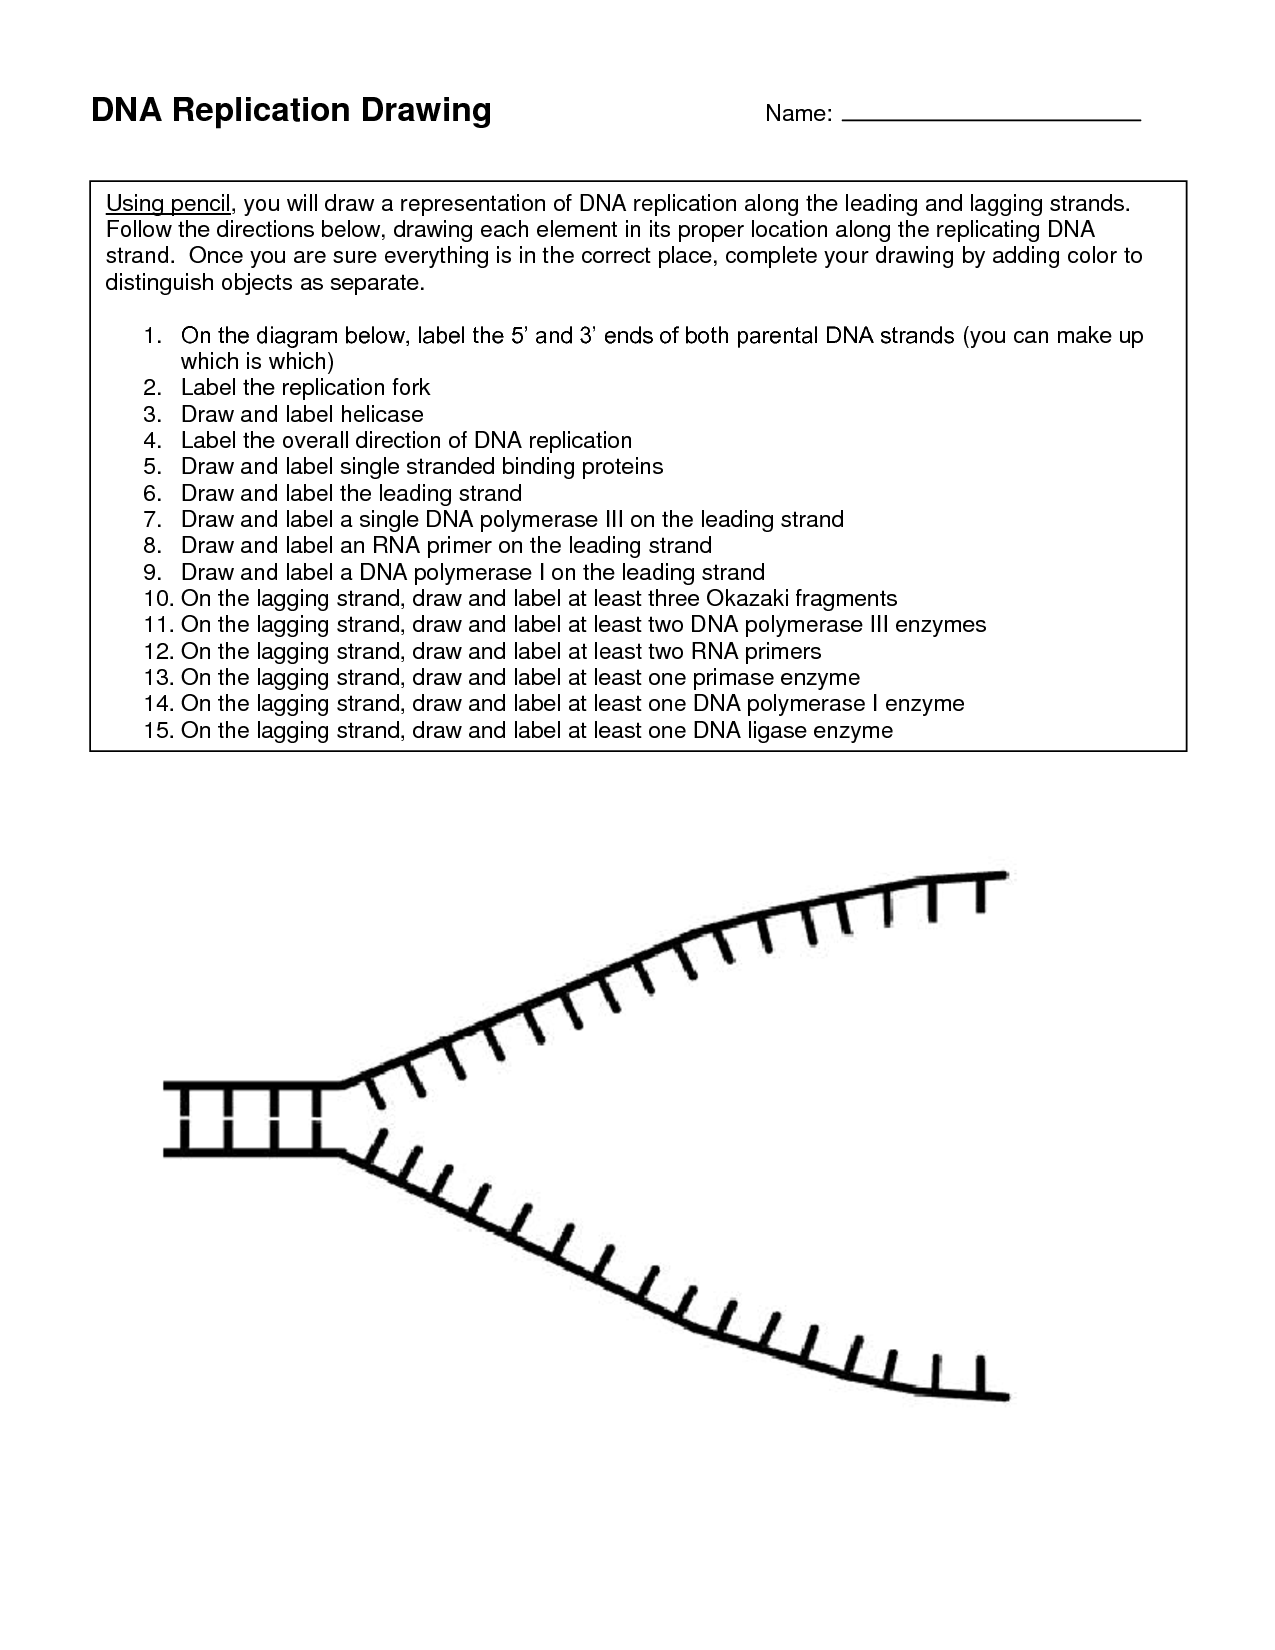 Lambiase Tina Honors Biology – Genetic Disorders Worksheet